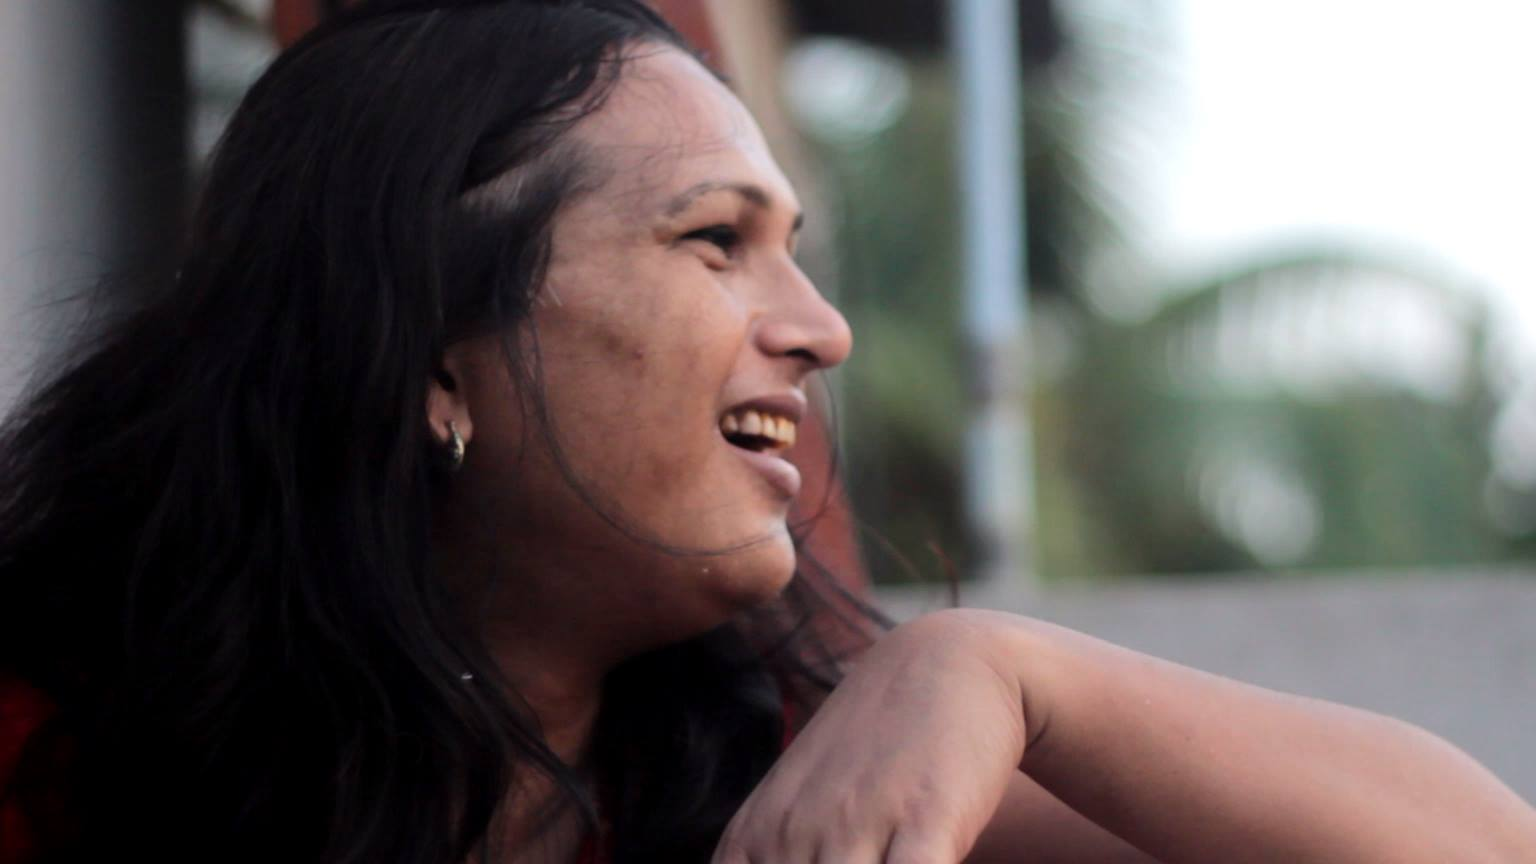 Discussing the Gender Binary, Trans Rights and Social Acceptance With Activist Raina Roy